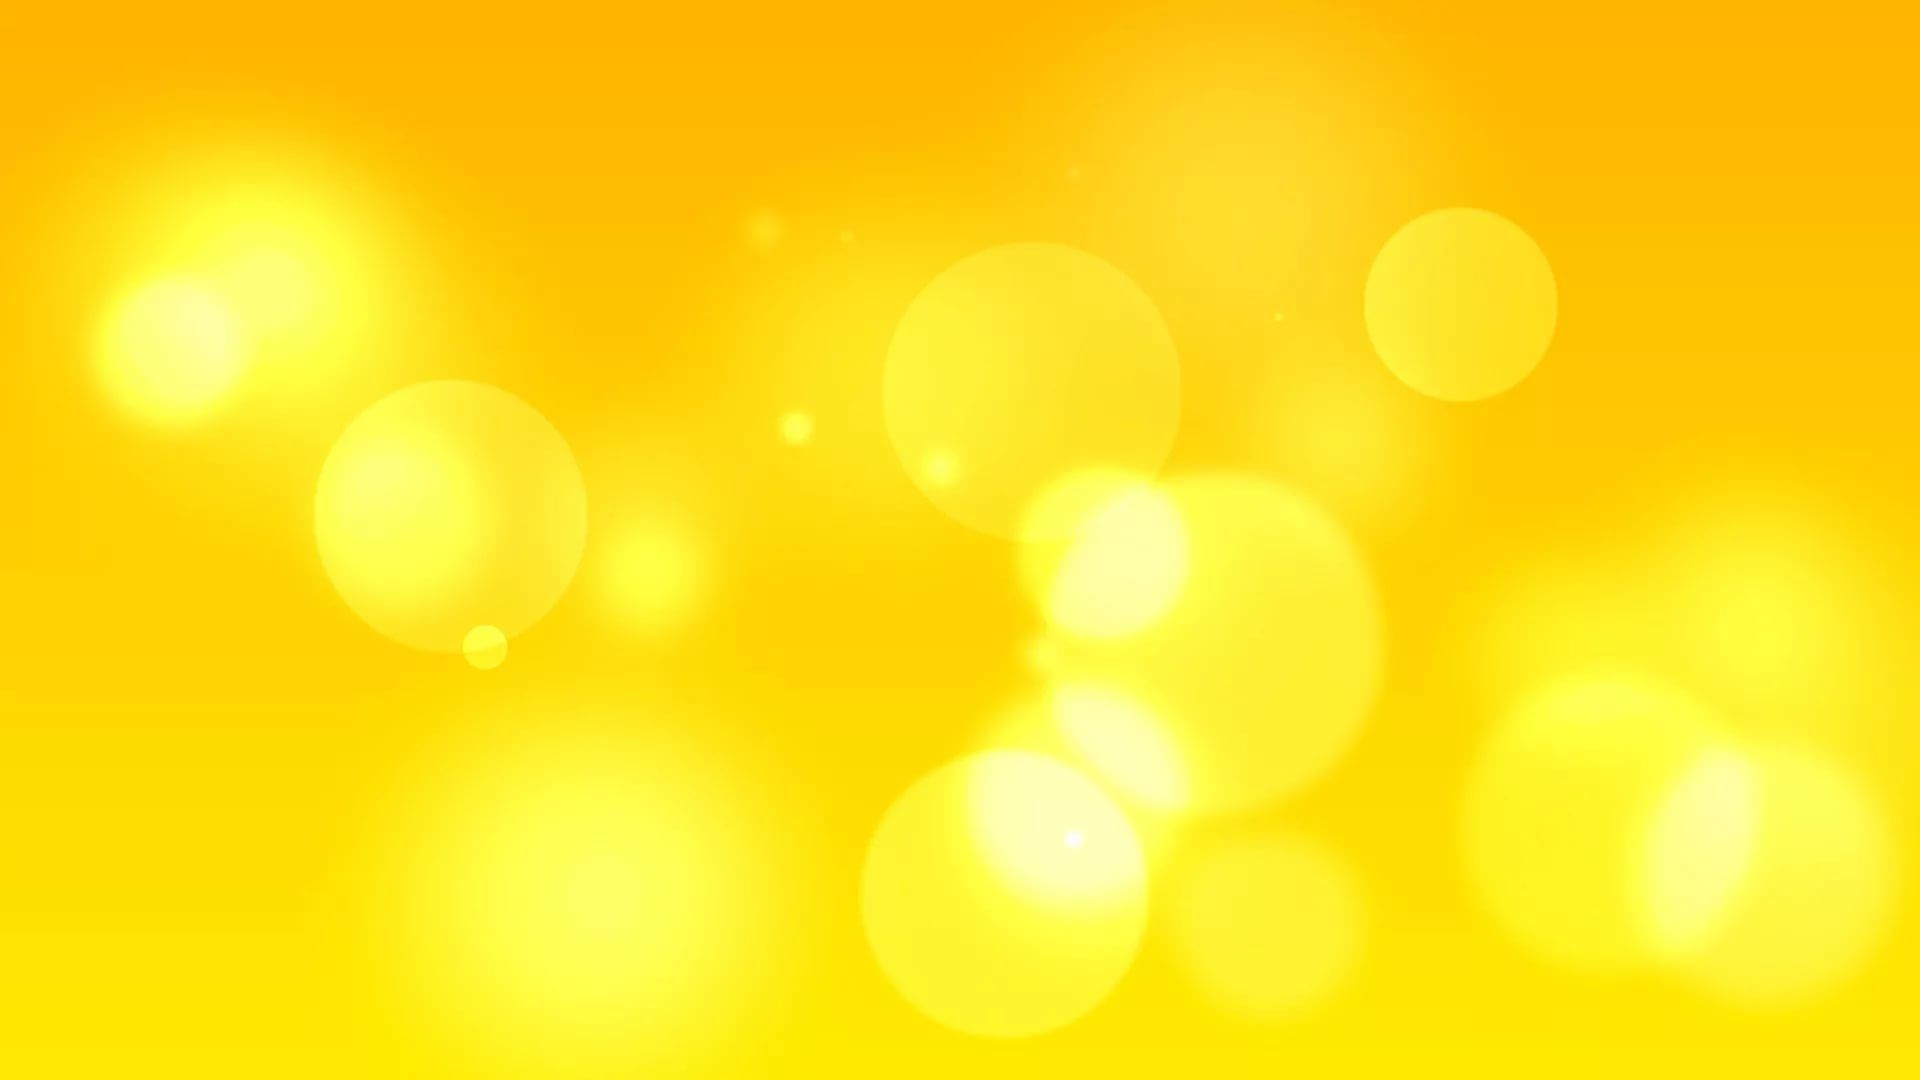 Yellow Abstract free download wallpaper